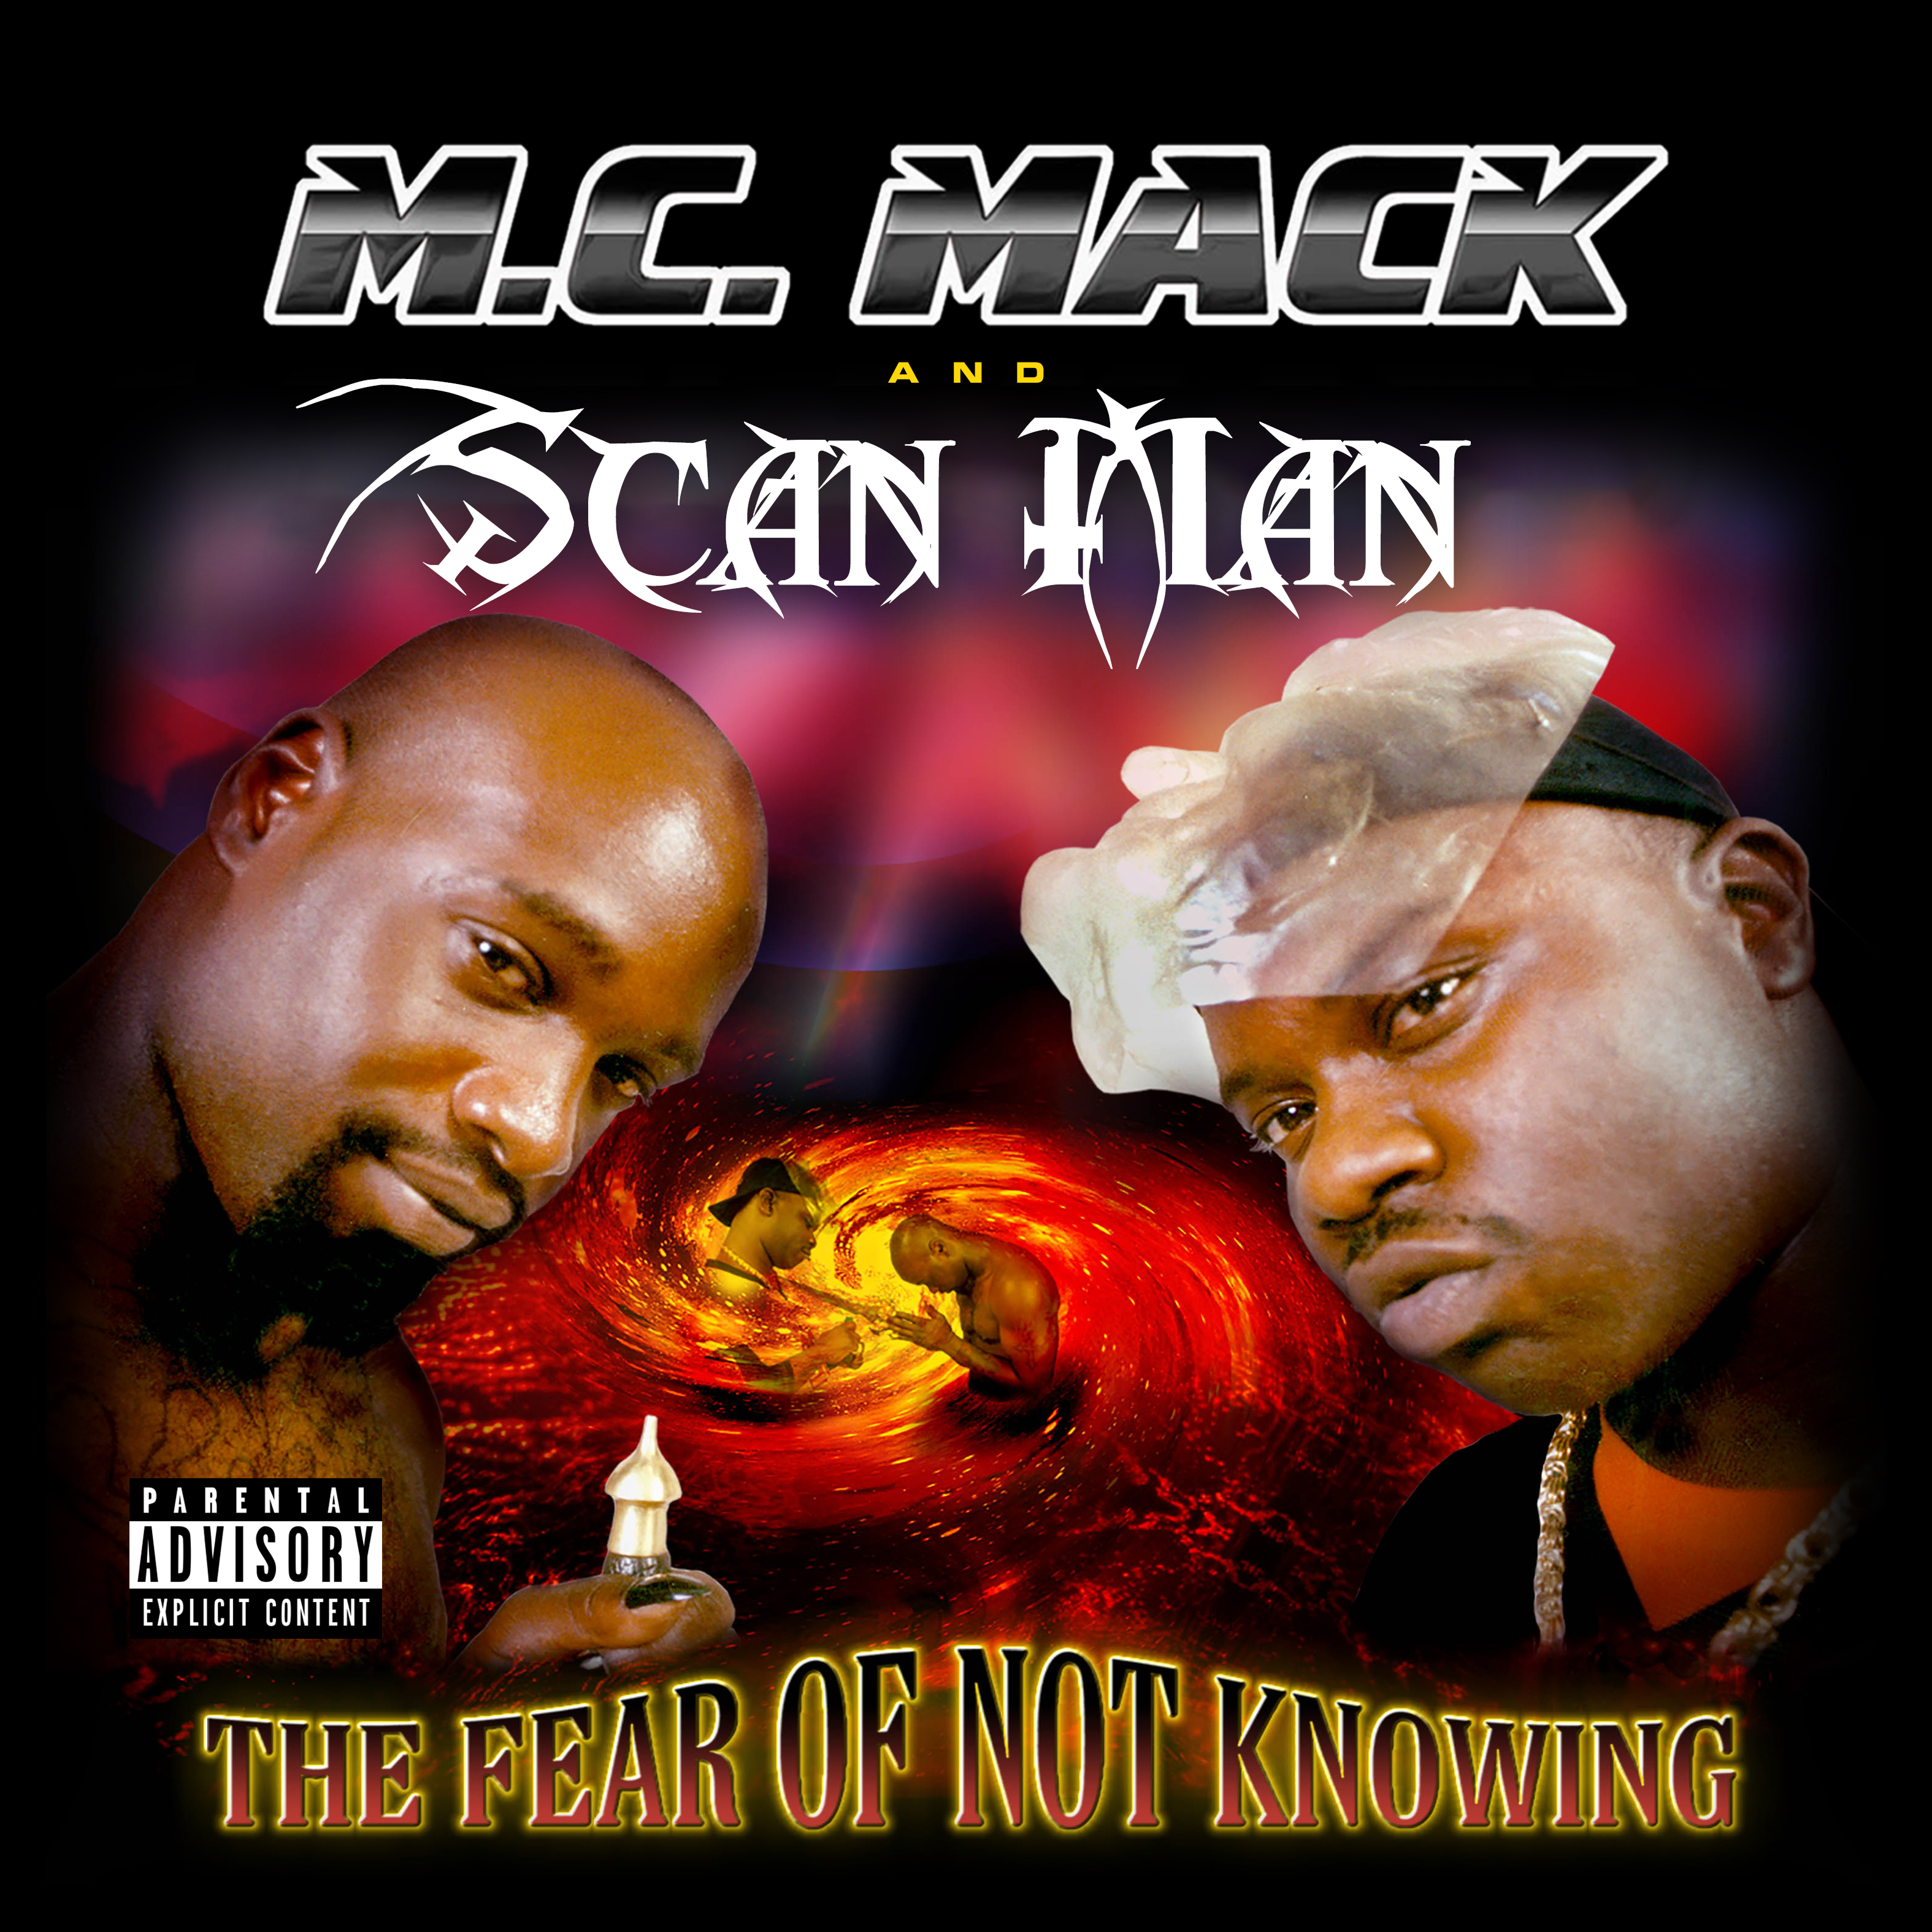 M.C. Mack & Scan Man - The Fear of Not Knowing EP